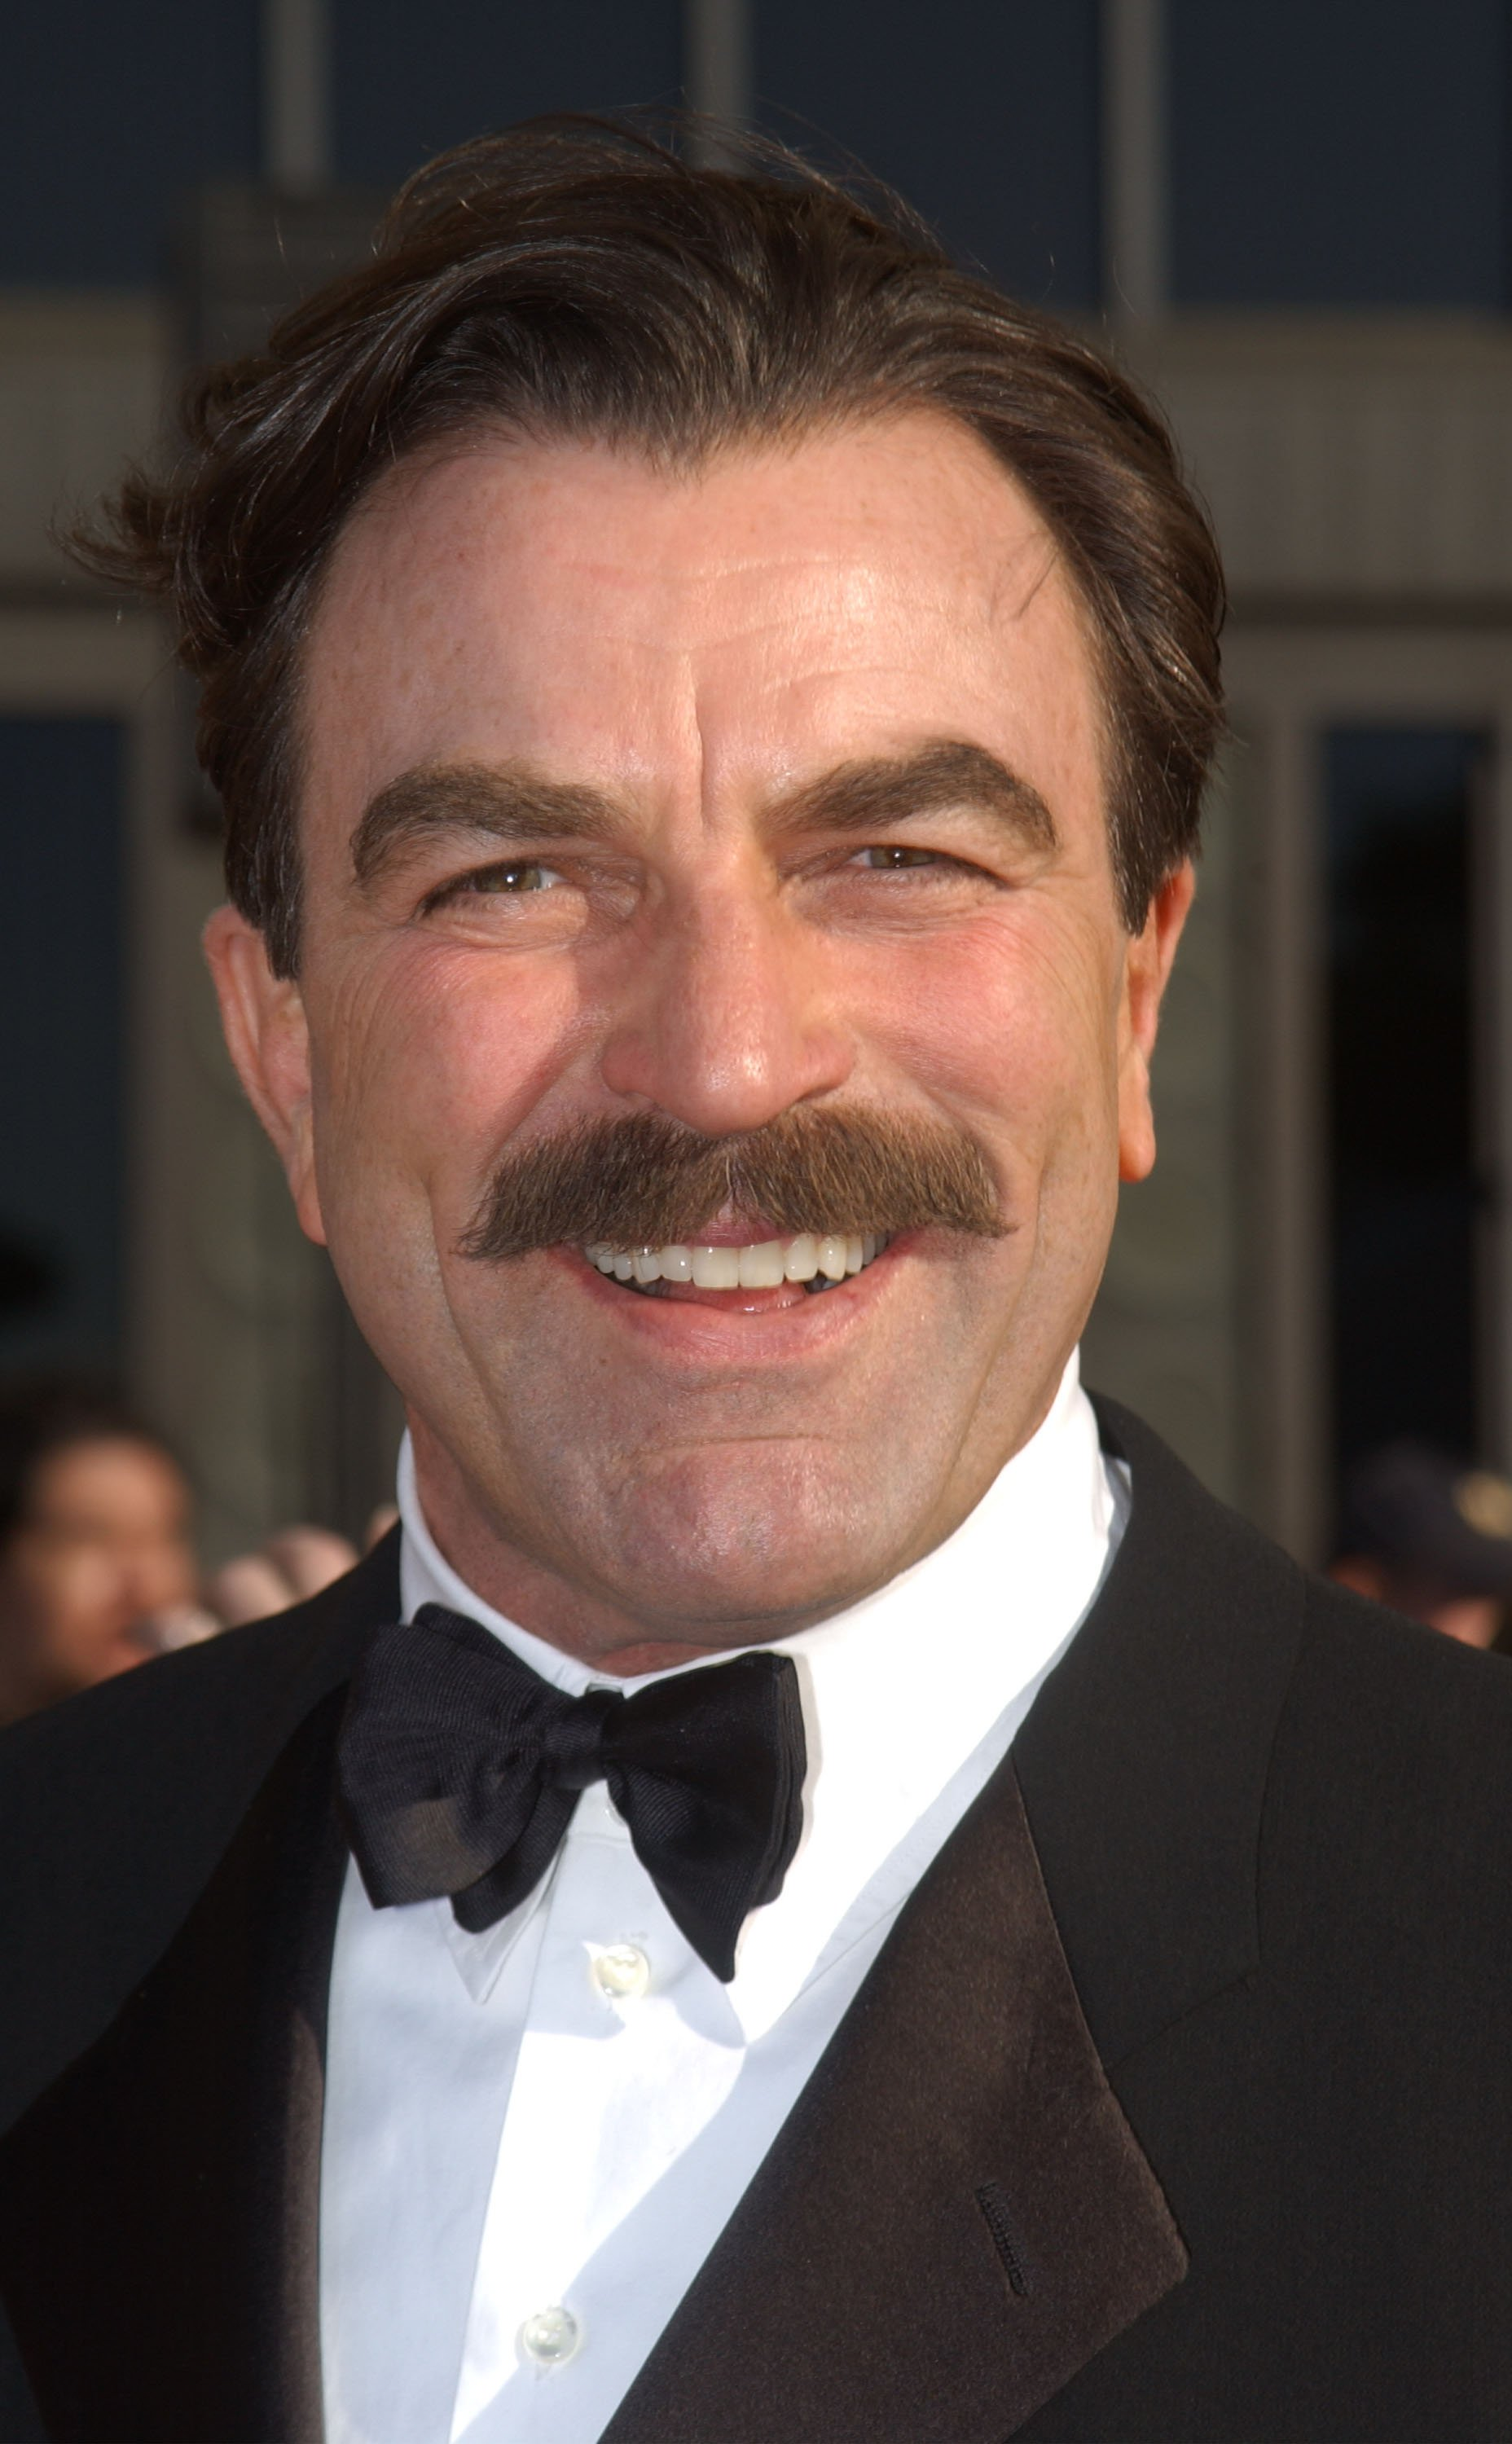 Tom Selleck attends the 8th Annual Screen Actors Guild Awards on March 10, 2002 | Photo: GettyImages